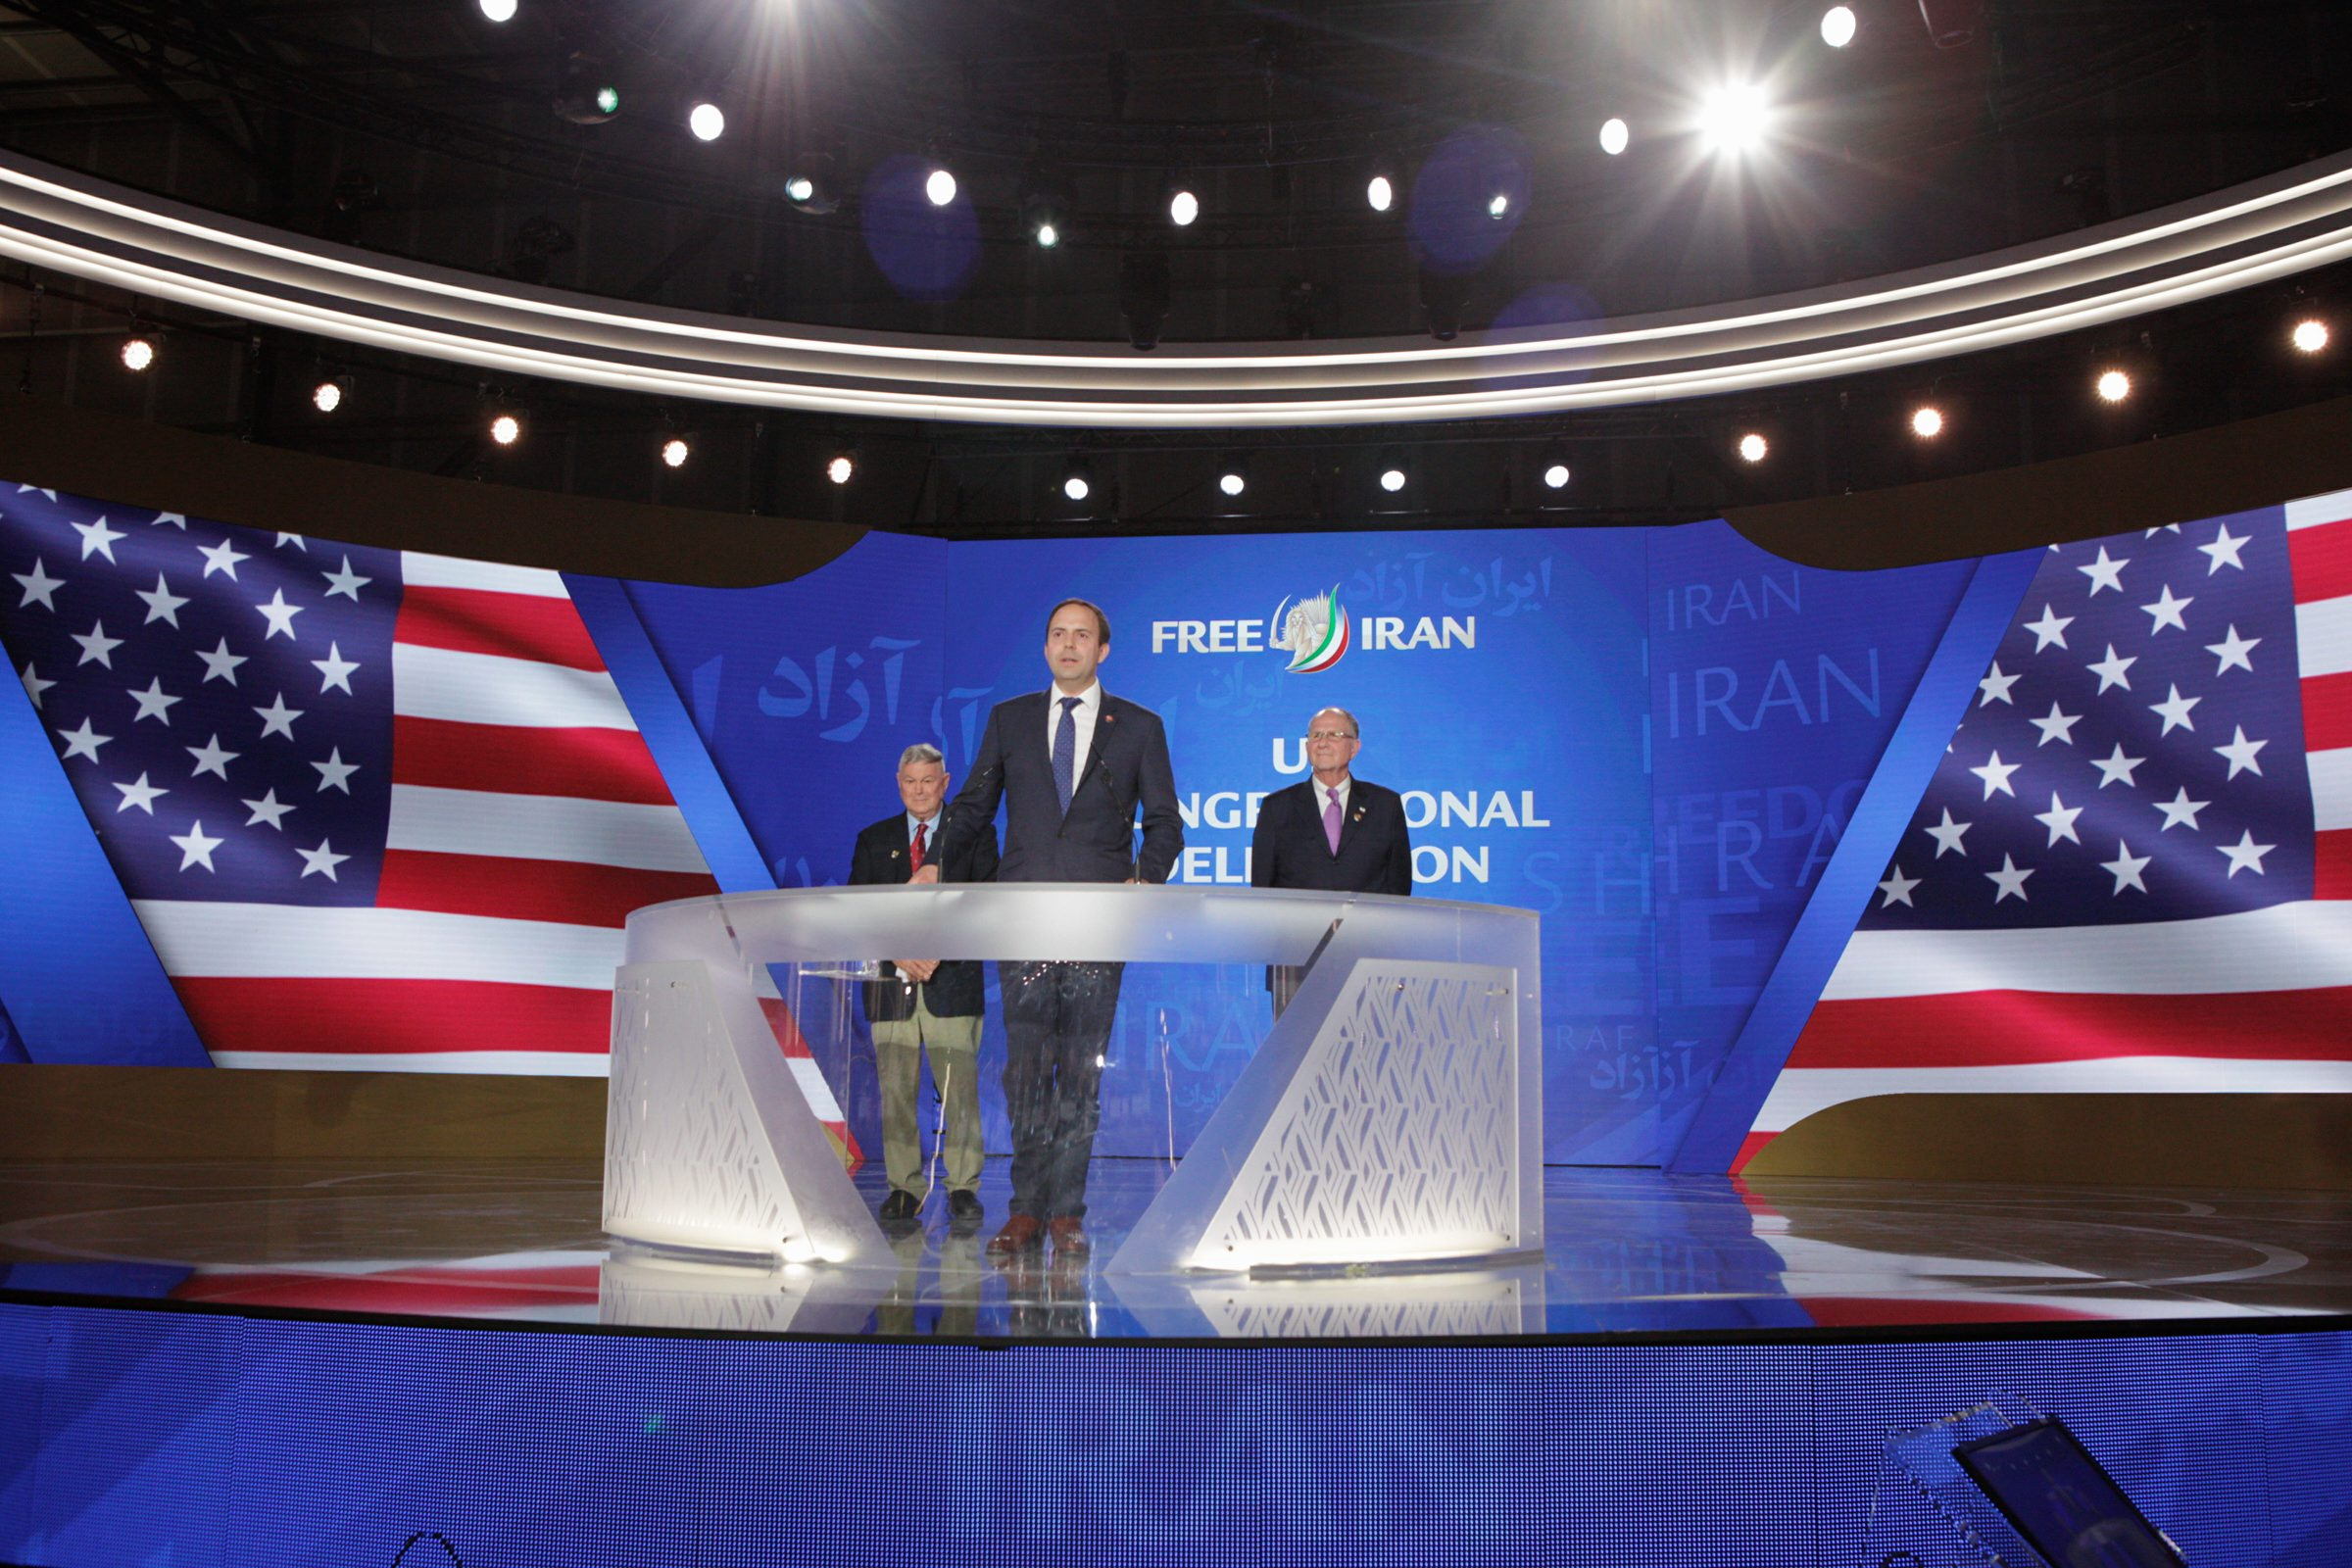 'We have to have regime change in Iran now'